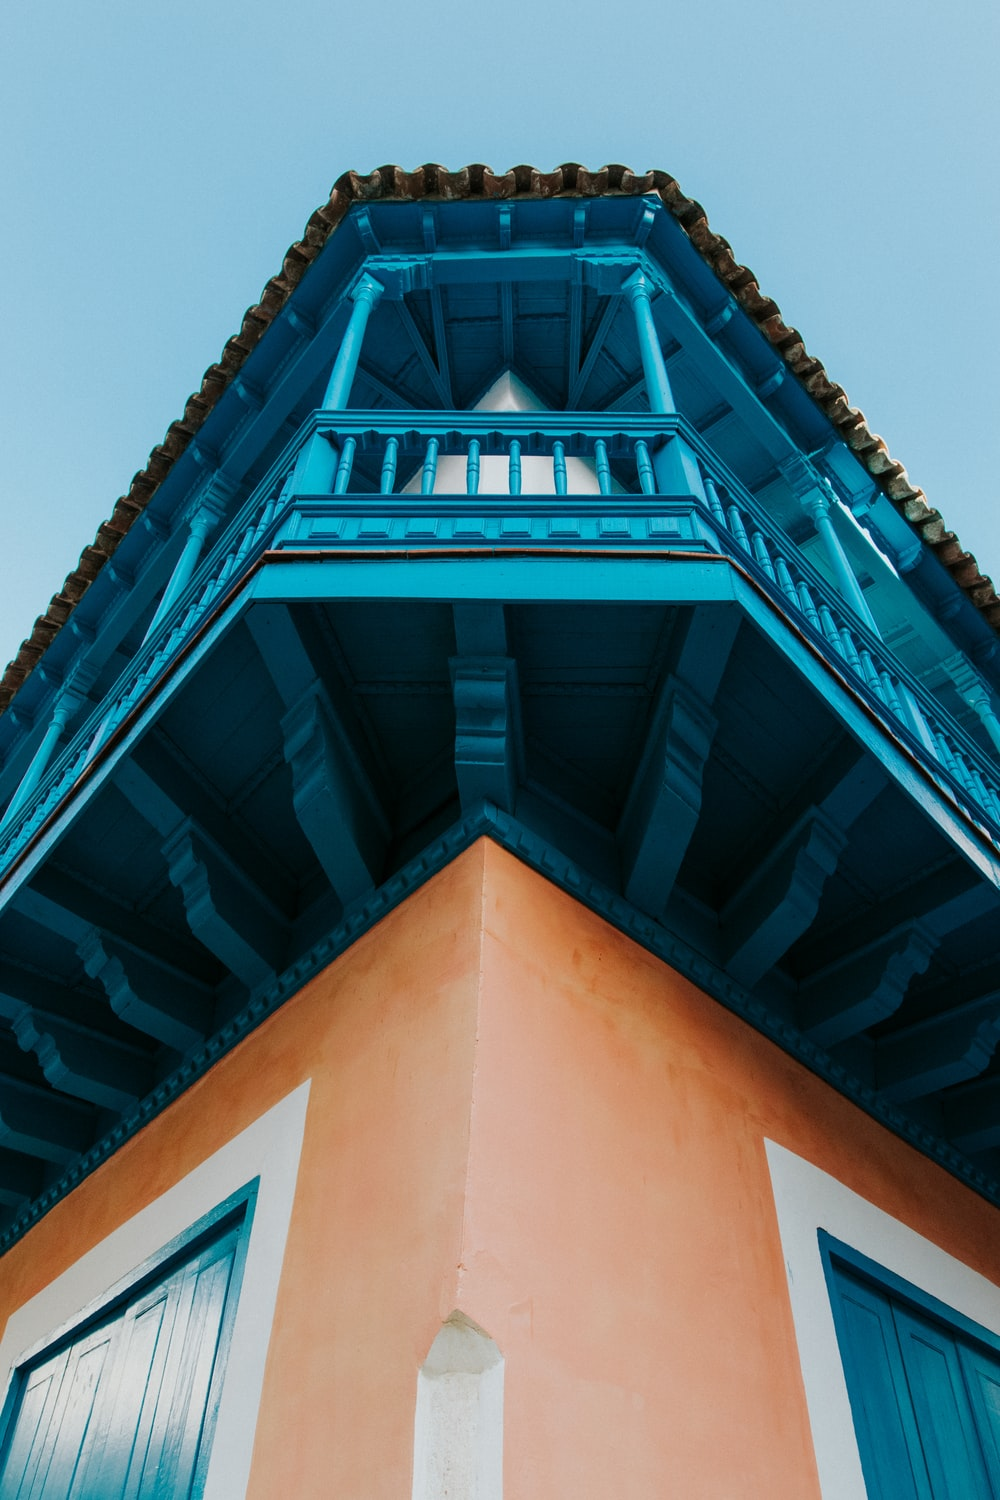 brown and blue two-storey building